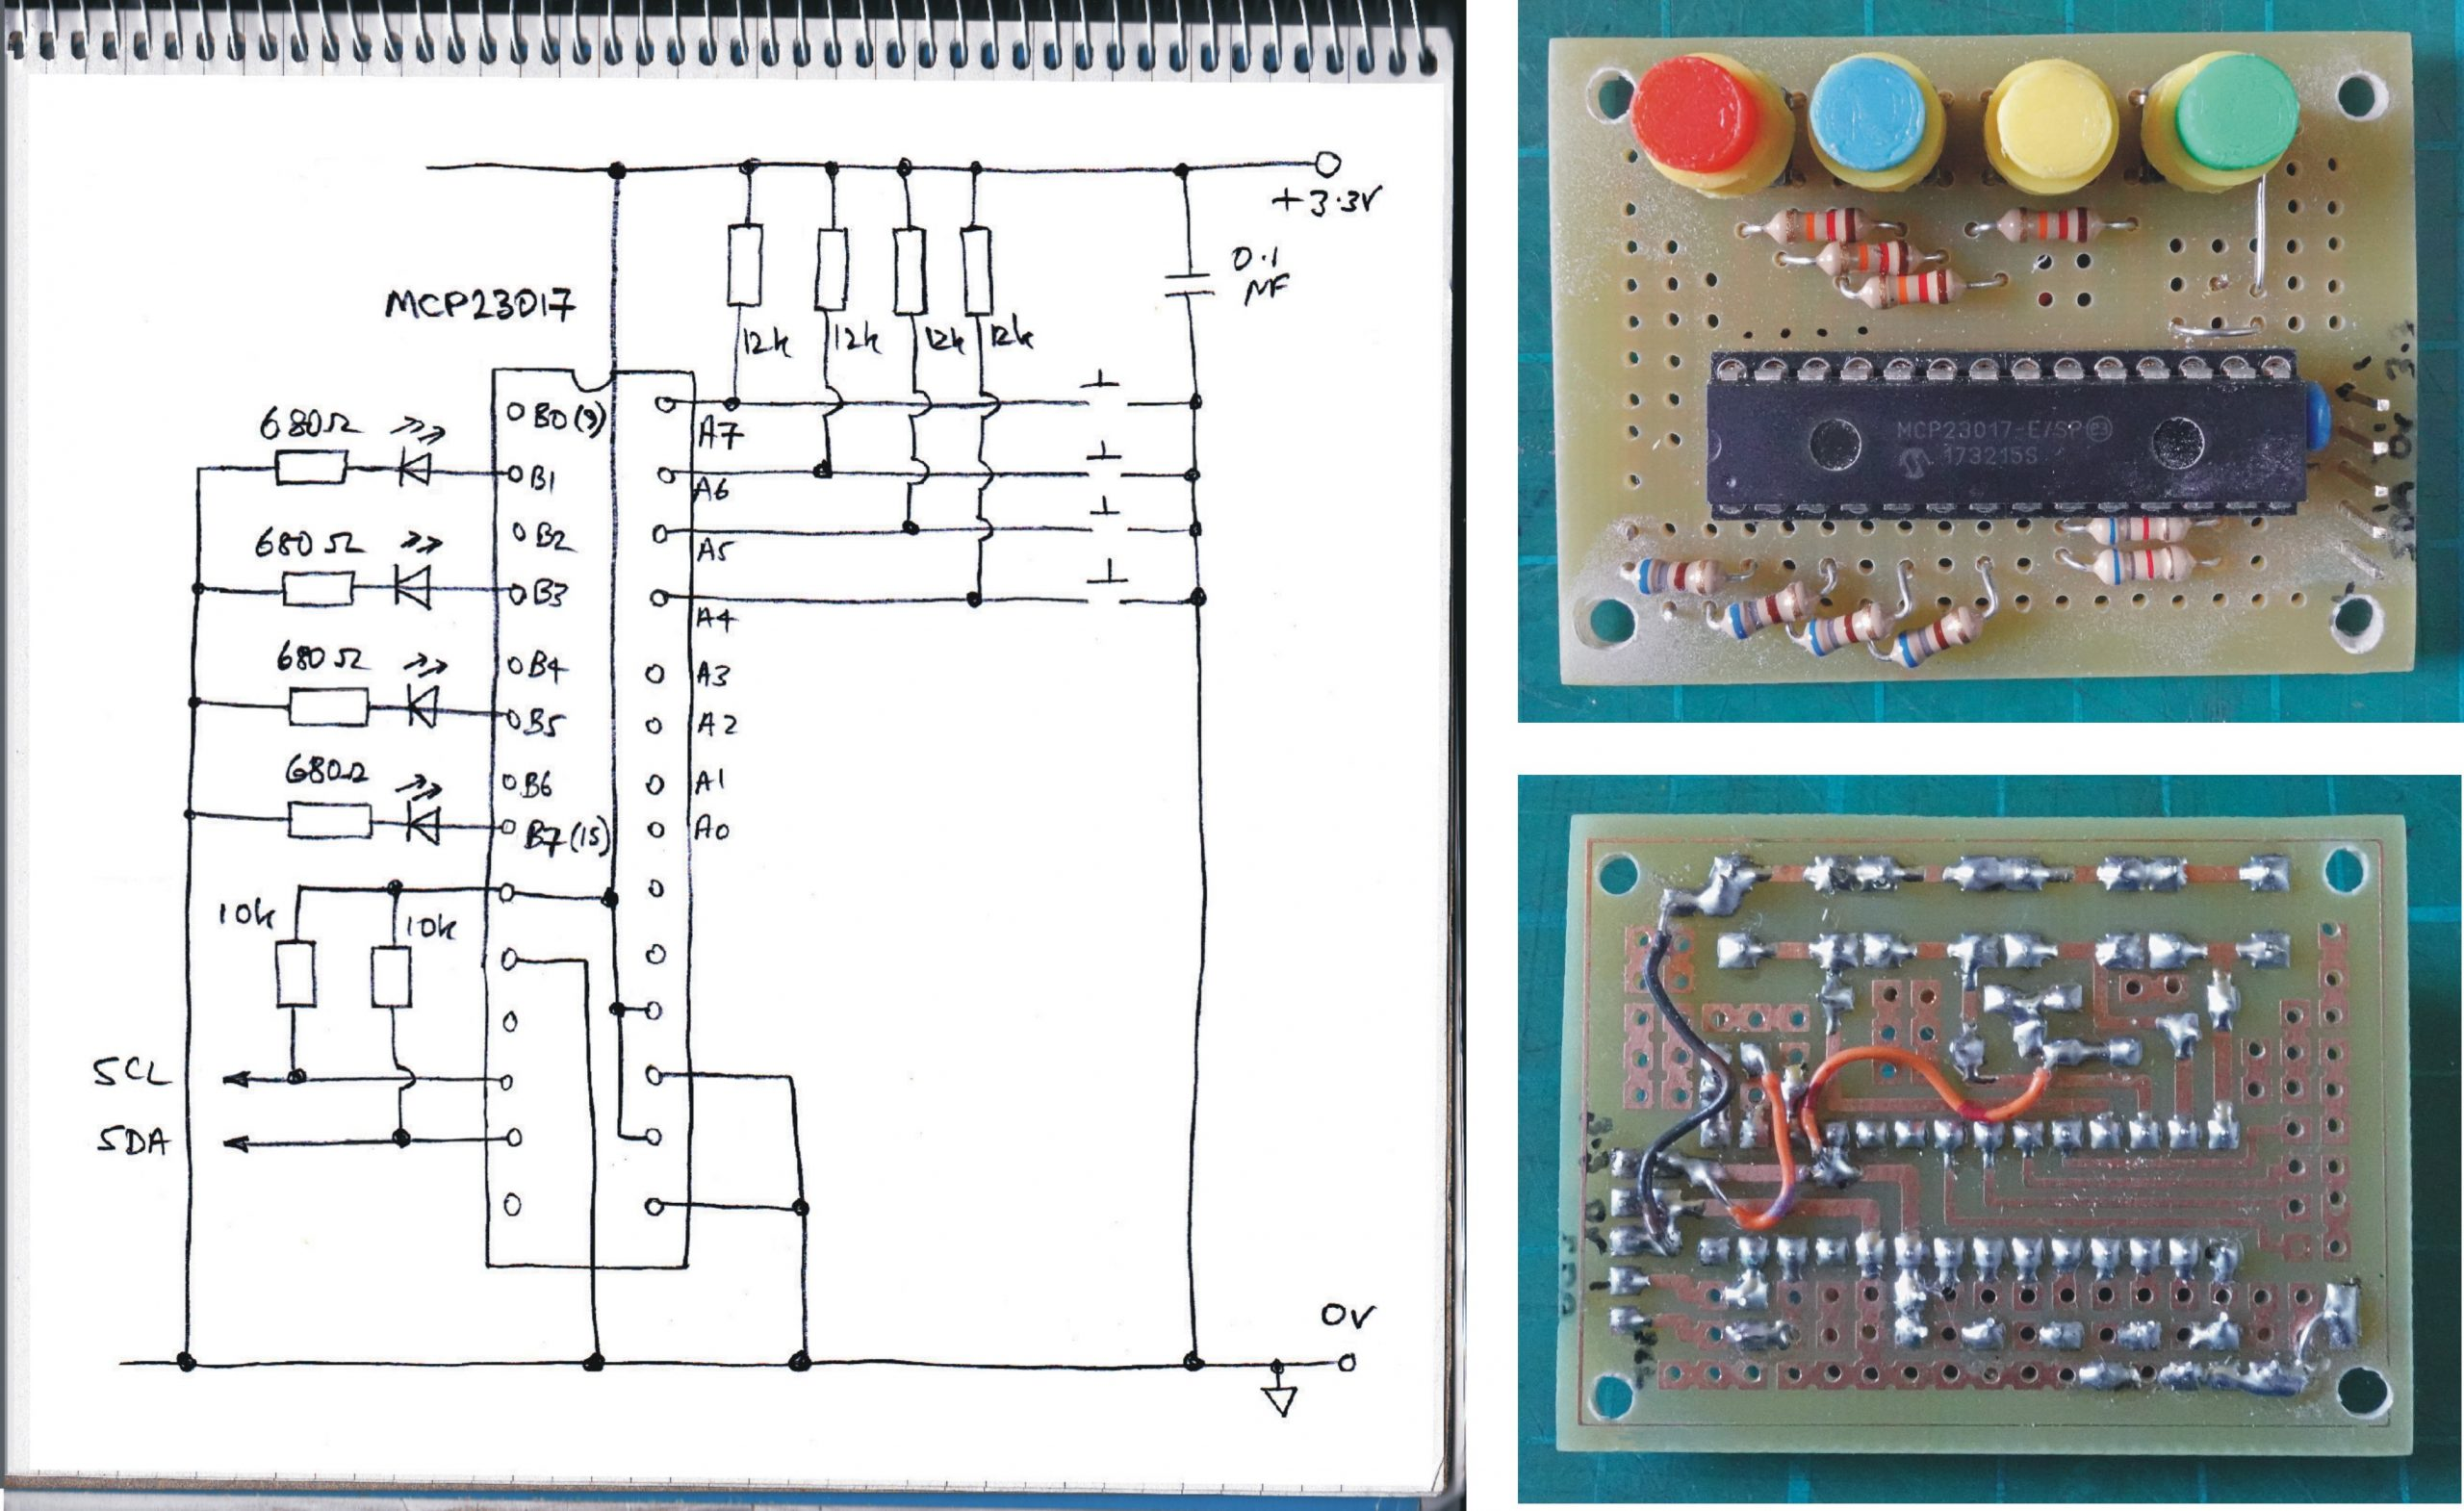 Watering system remote switch pcb & circuit